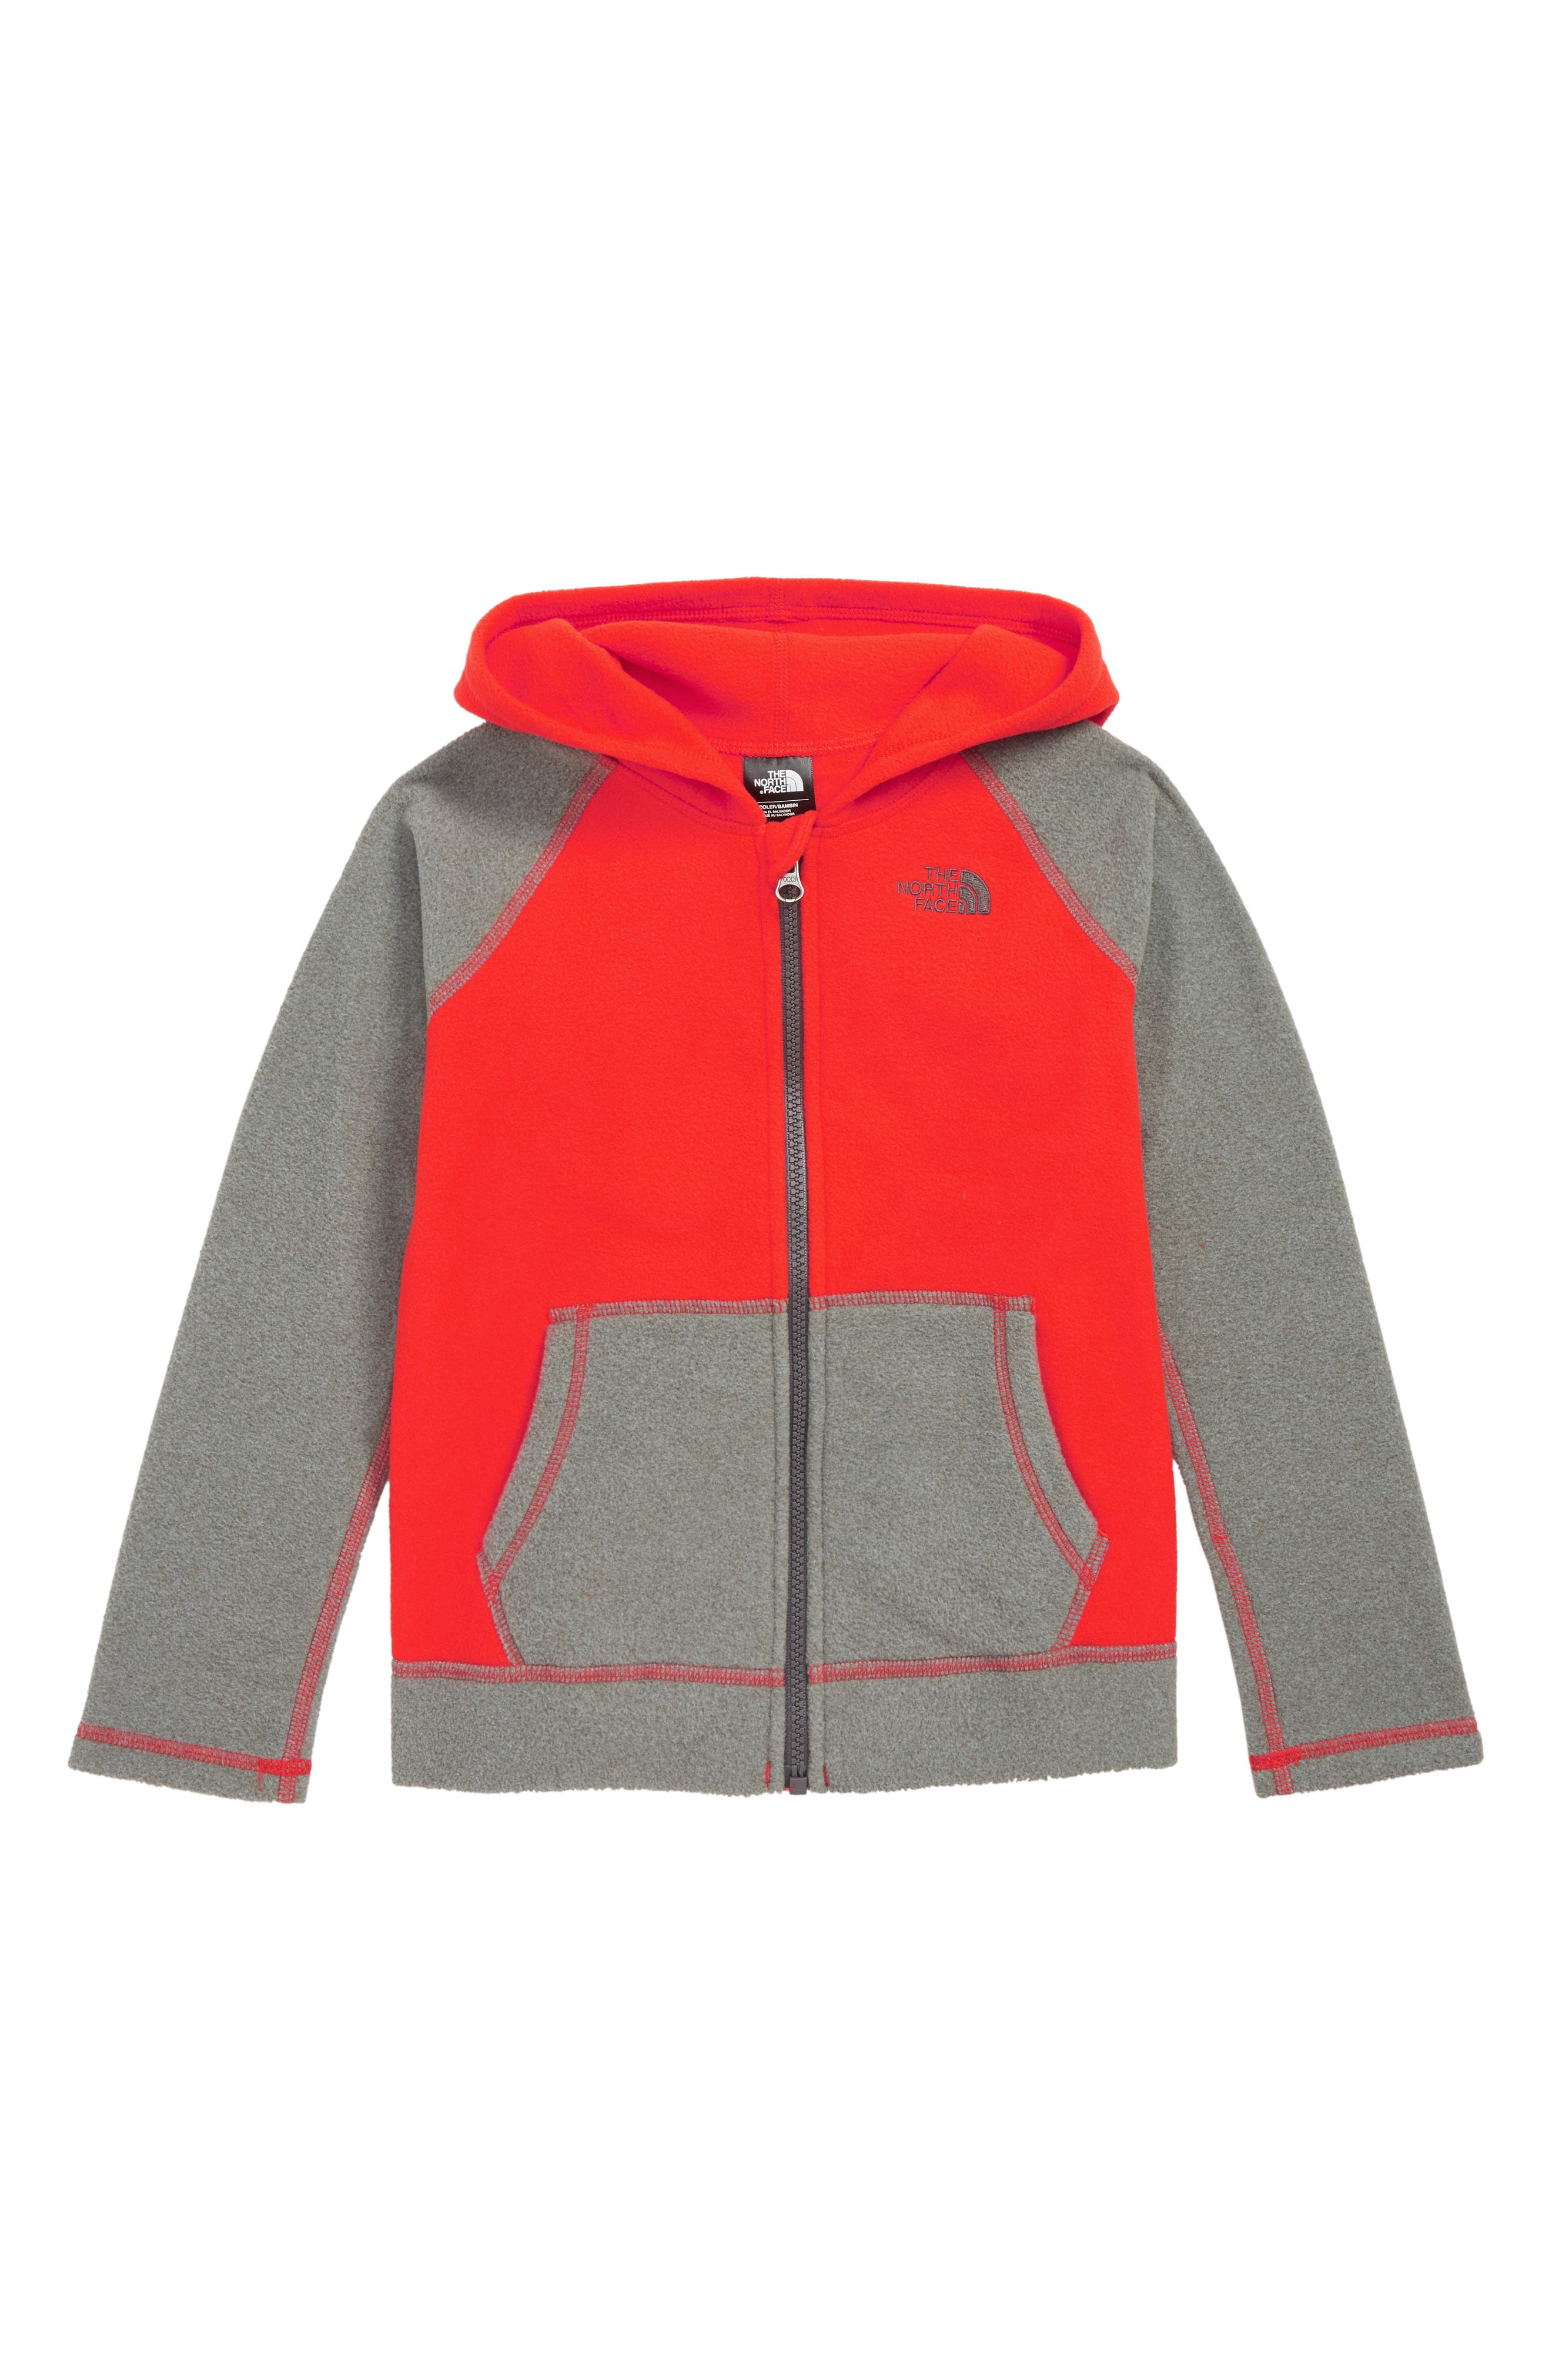 THE NORTH FACE, Glacier Zip Hoodie, Main thumbnail 1, color, FIERY RED